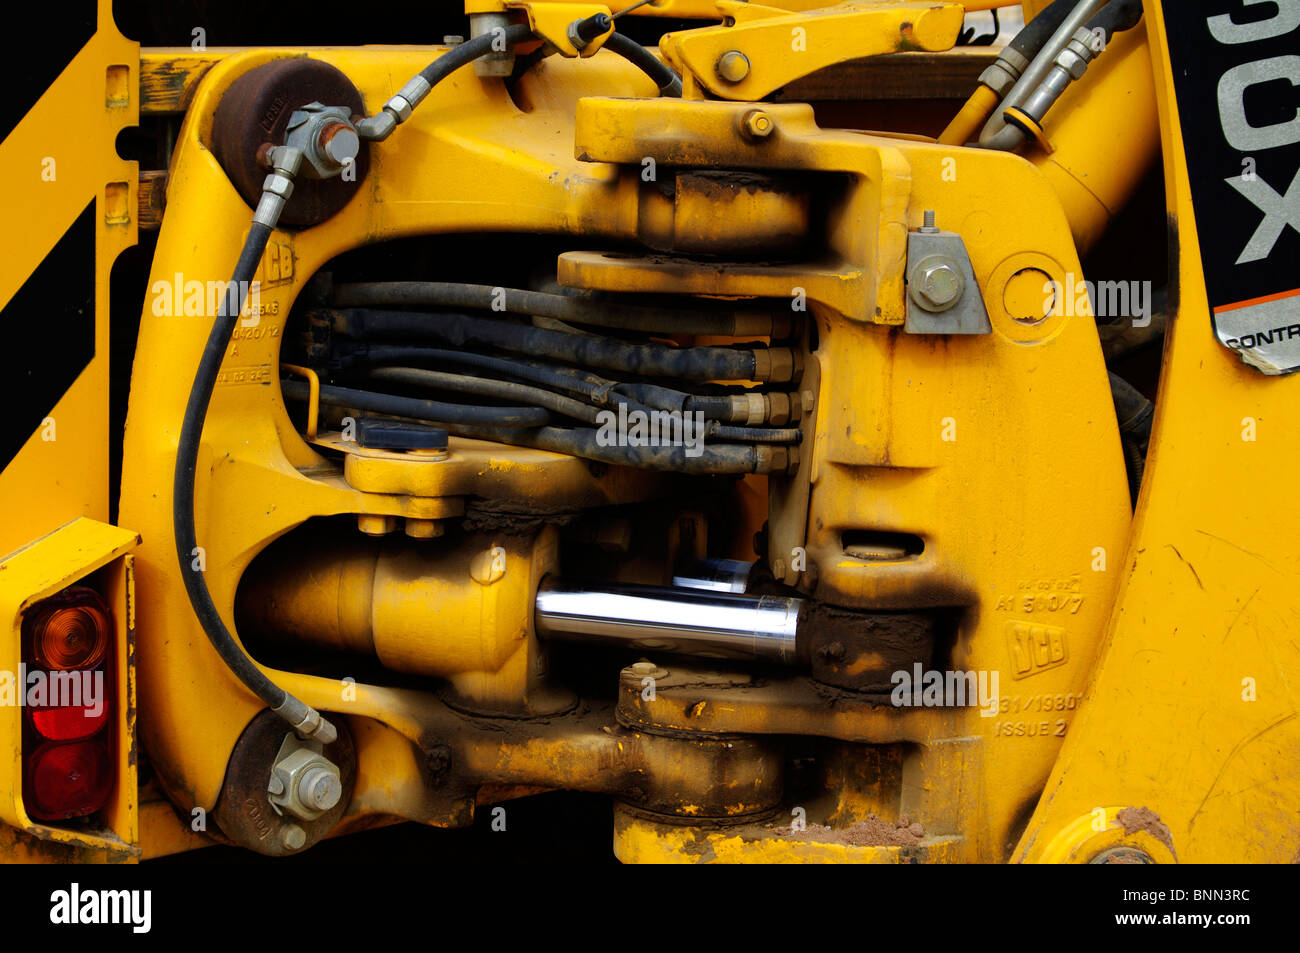 close up of a jcb digger found on a construction site stock photo